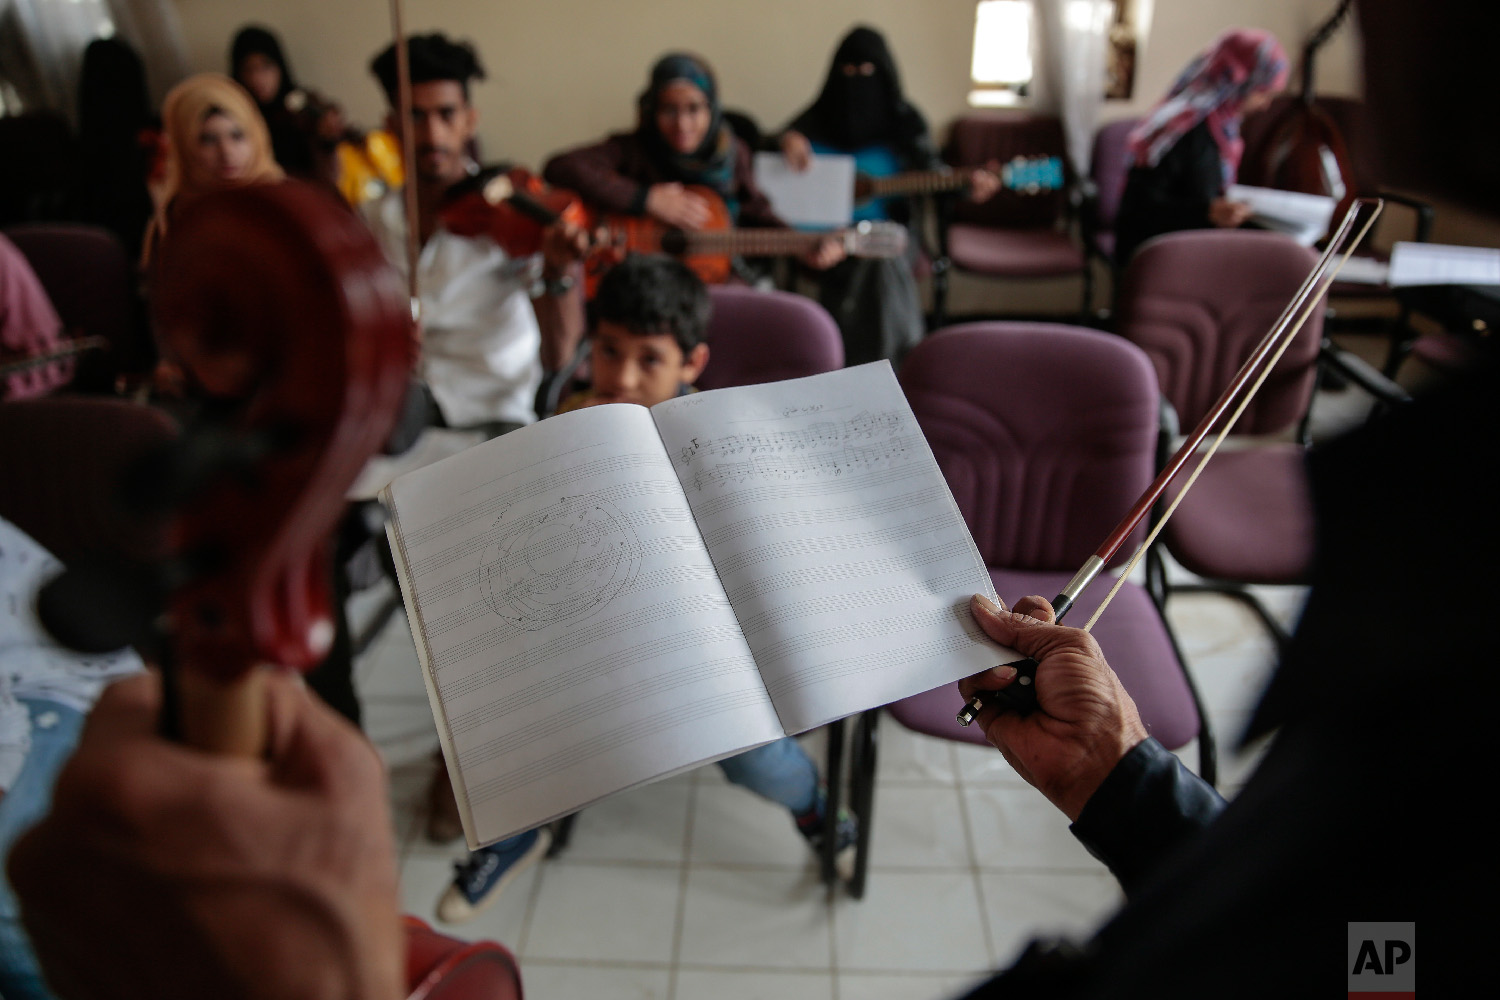 Abdullah El-Deb'y, a music trainer teaches his students during a music class at the Cultural Centre in Sanaa, Yemen on Sunday, April 8, 2018.(AP Photo/Hani Mohammed)